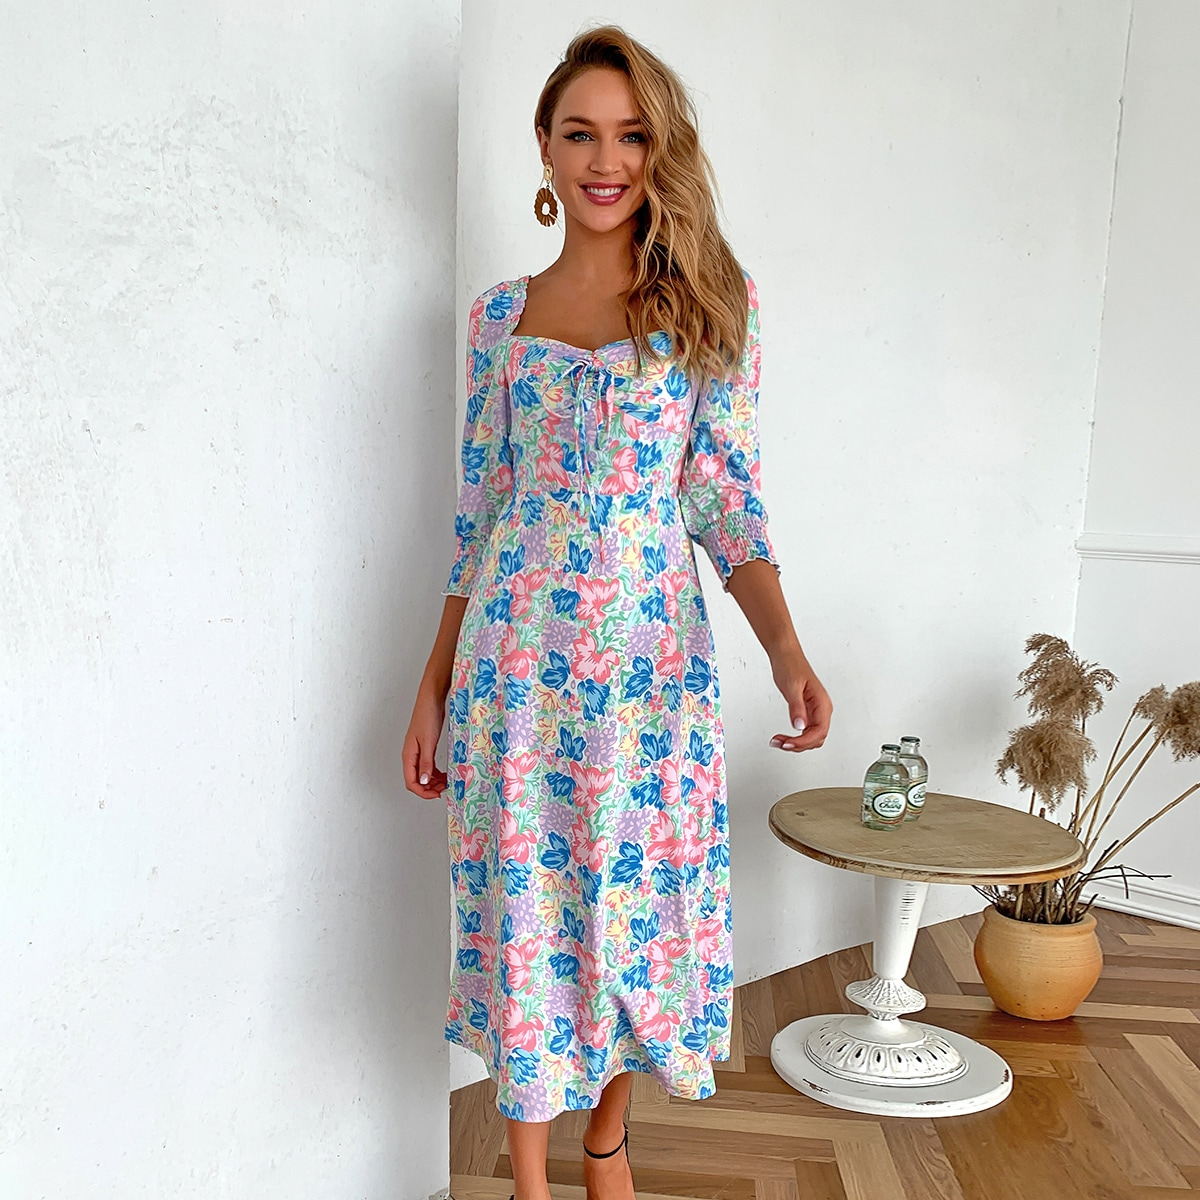 Sweetheart Neck Tie Front Floral Dress